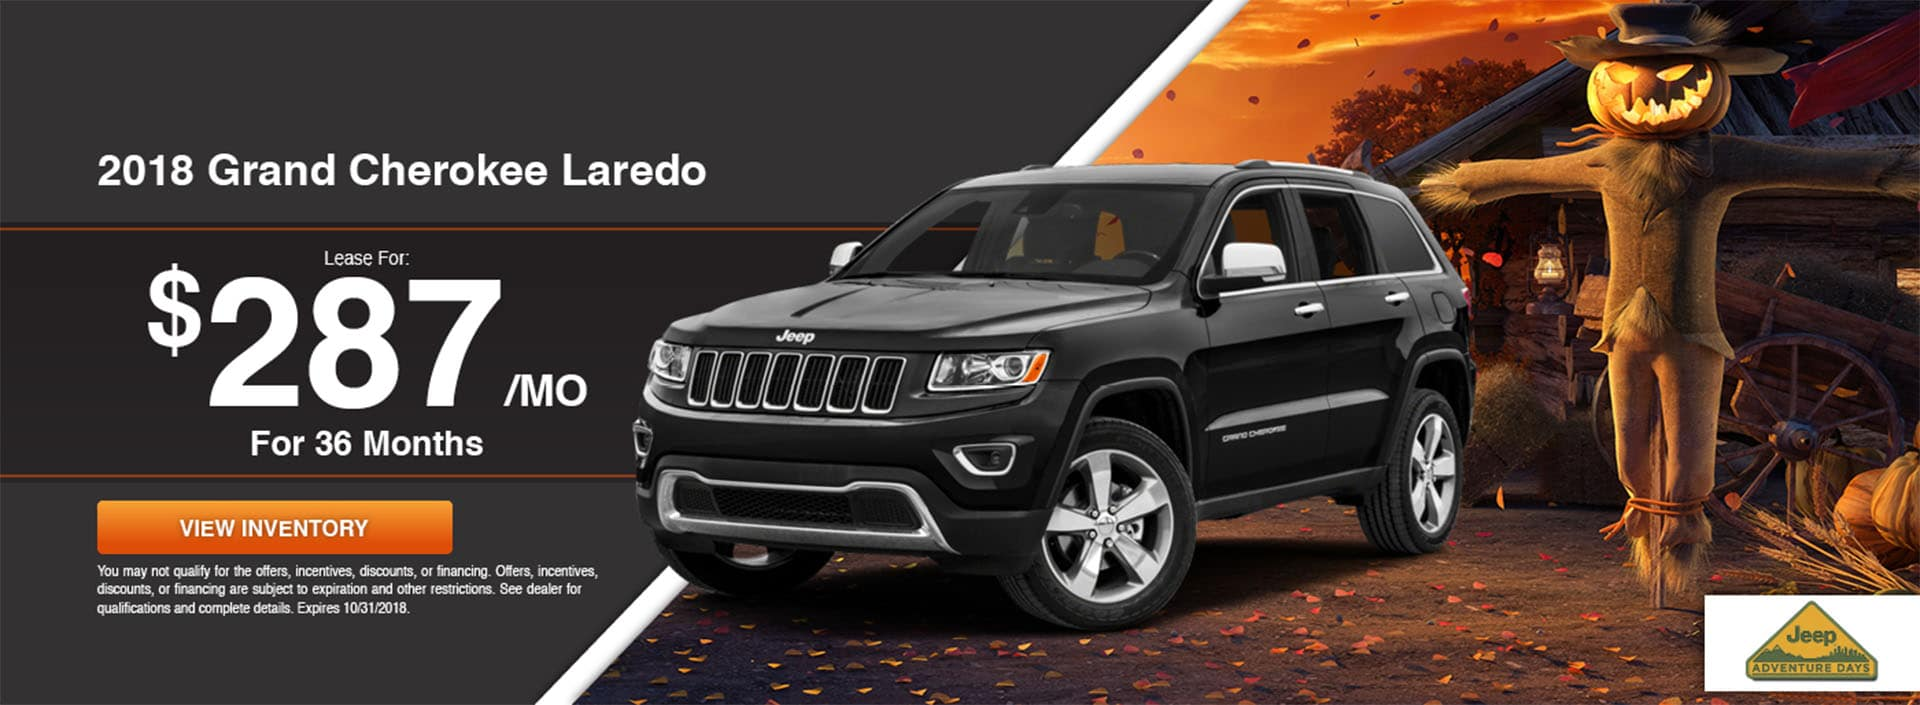 New 2018 Jeep Grand Cherokee for Sale in Waseca, MN